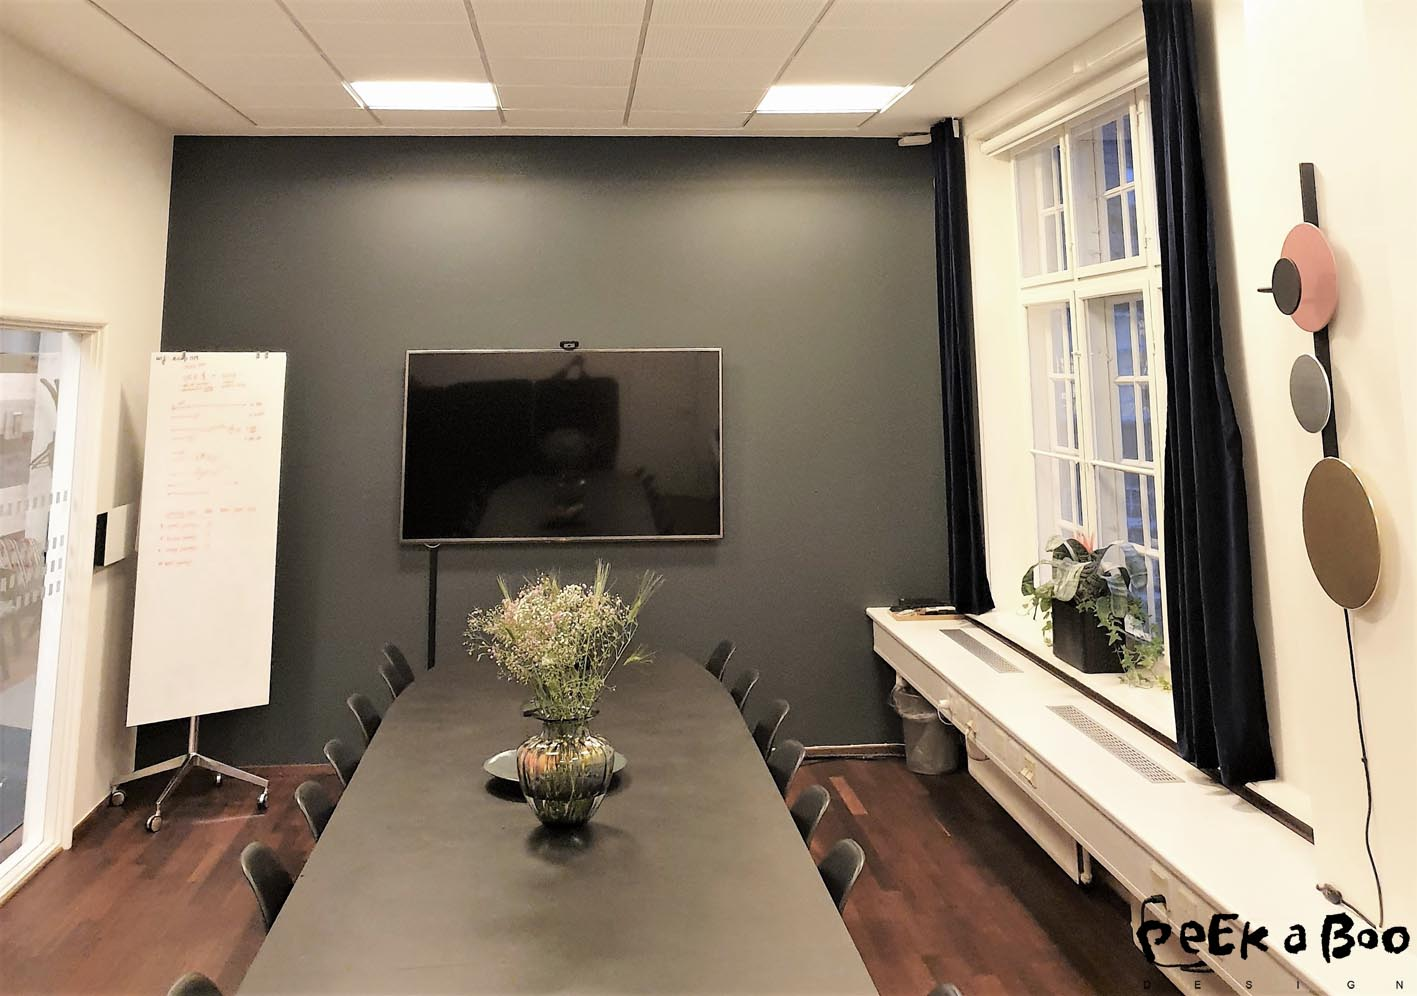 At the end wall of the big meetingroom there is a dark grey wall to keep a serious and calm atmosphere. I have added some textiles in form of velvet curtains from Jotex to get a cozy feeling to the room, aswell as the flowers does.